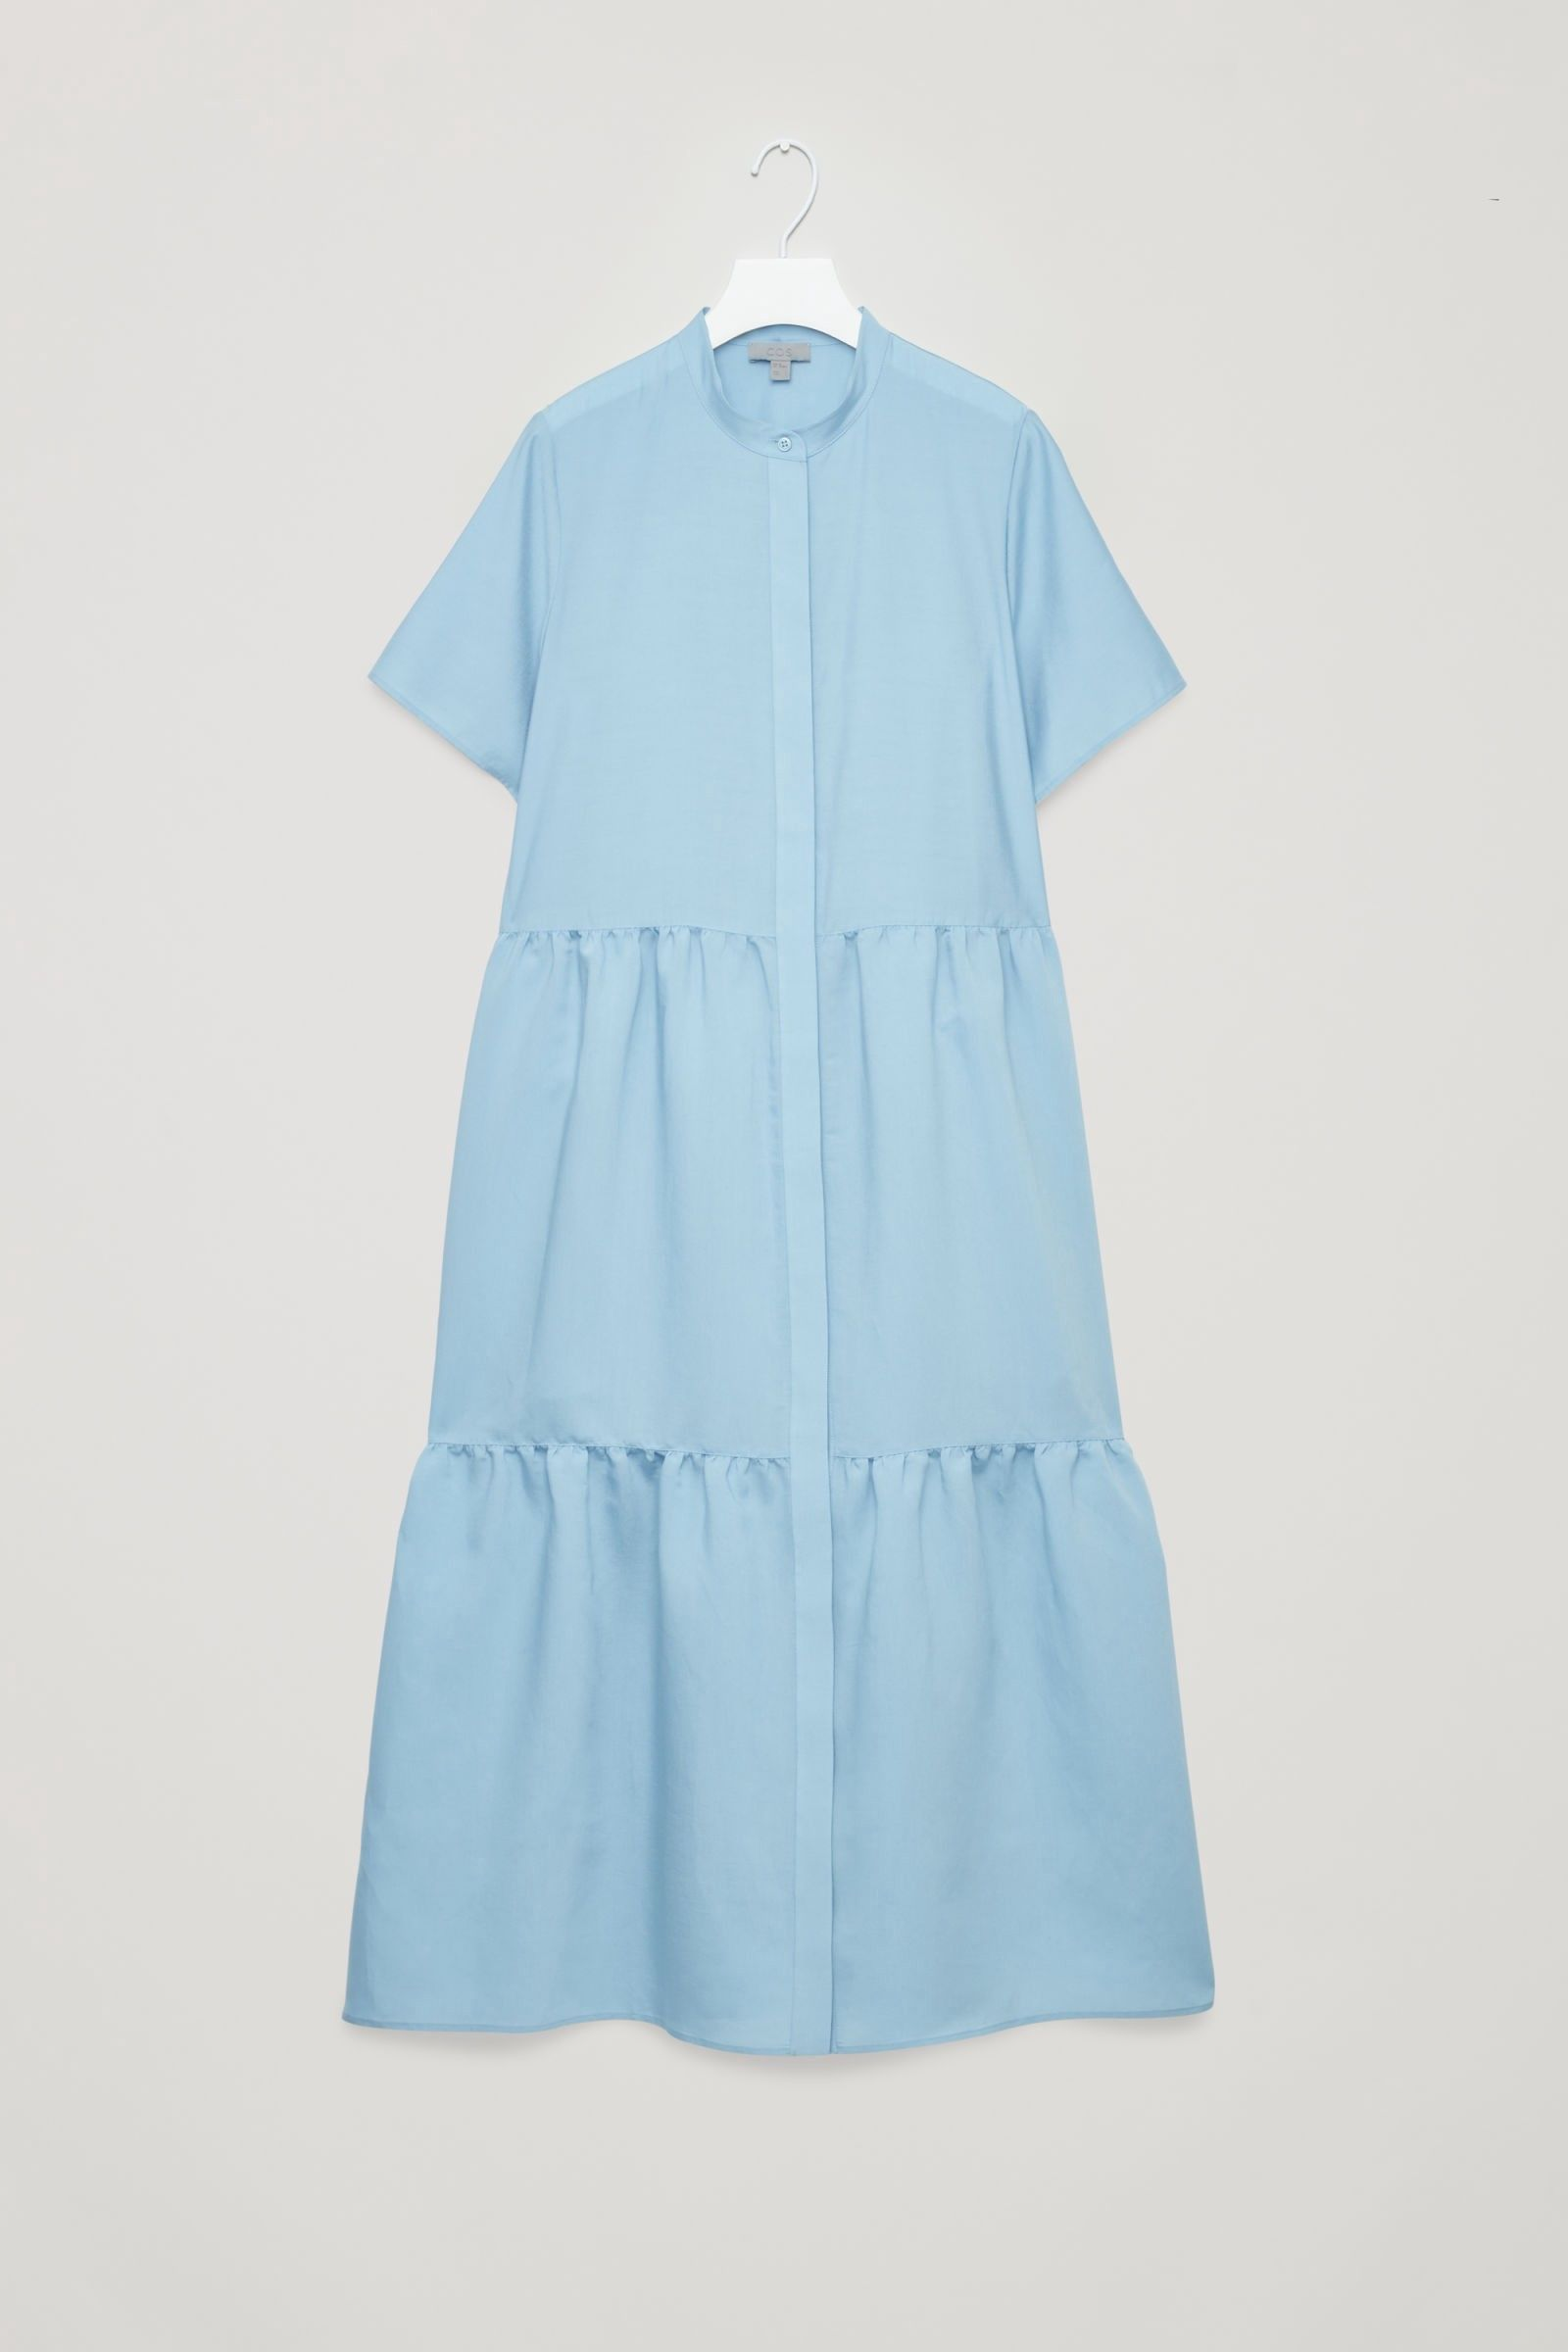 5b3198f1f1cd Cos Short-Sleeved Gathered Dress - Light Blue 12 in 2019 | Products ...